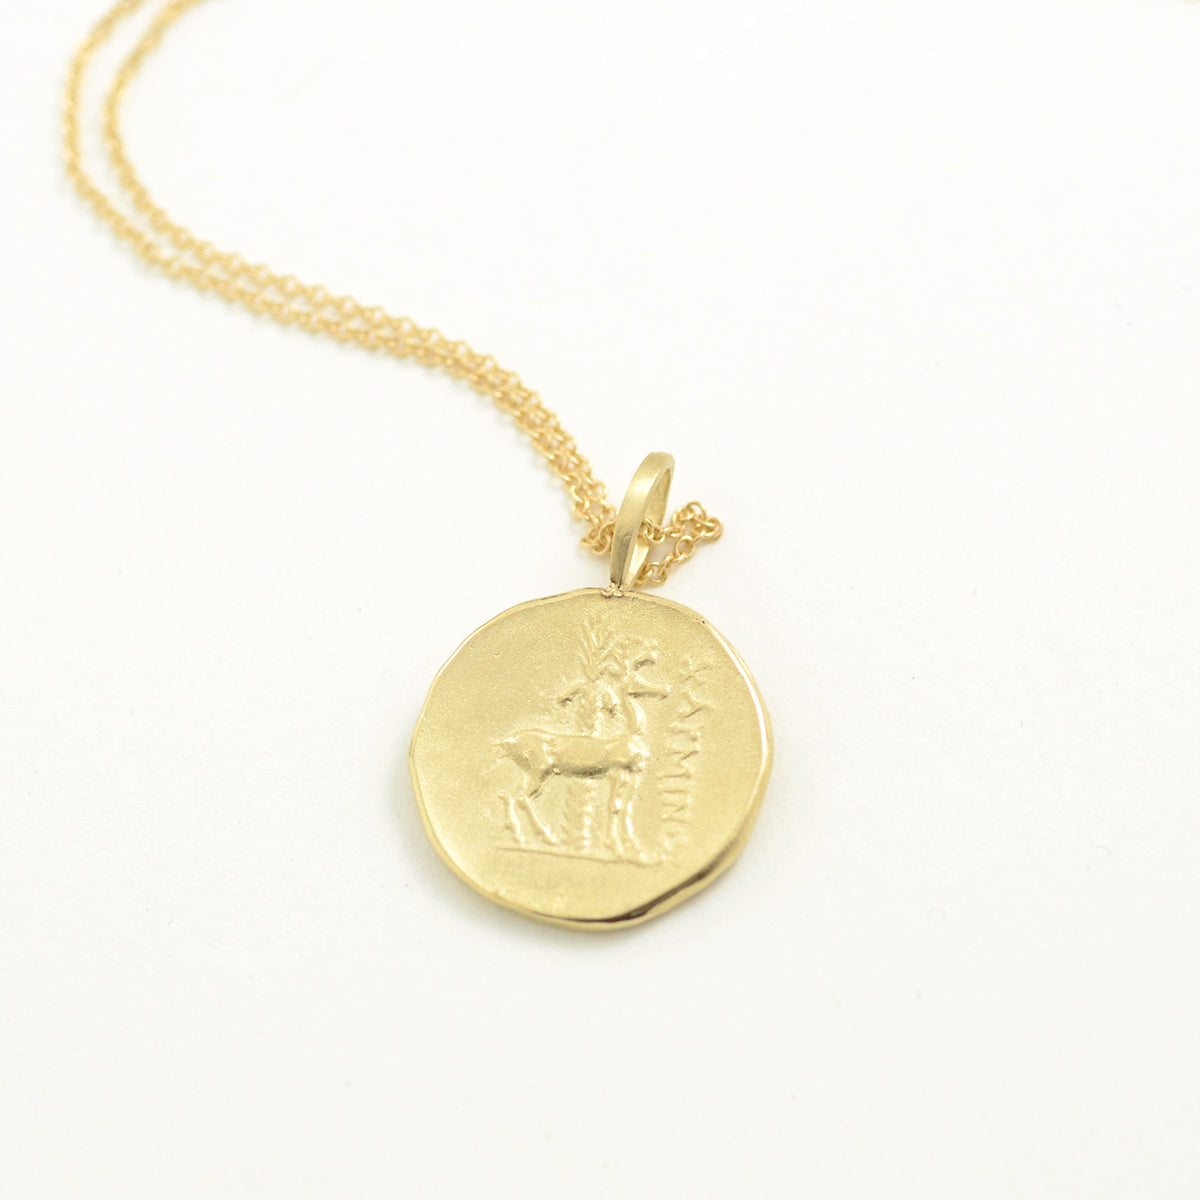 Robin Haley Antiquities Collection The Bee Necklace in 14kt yellow gold.